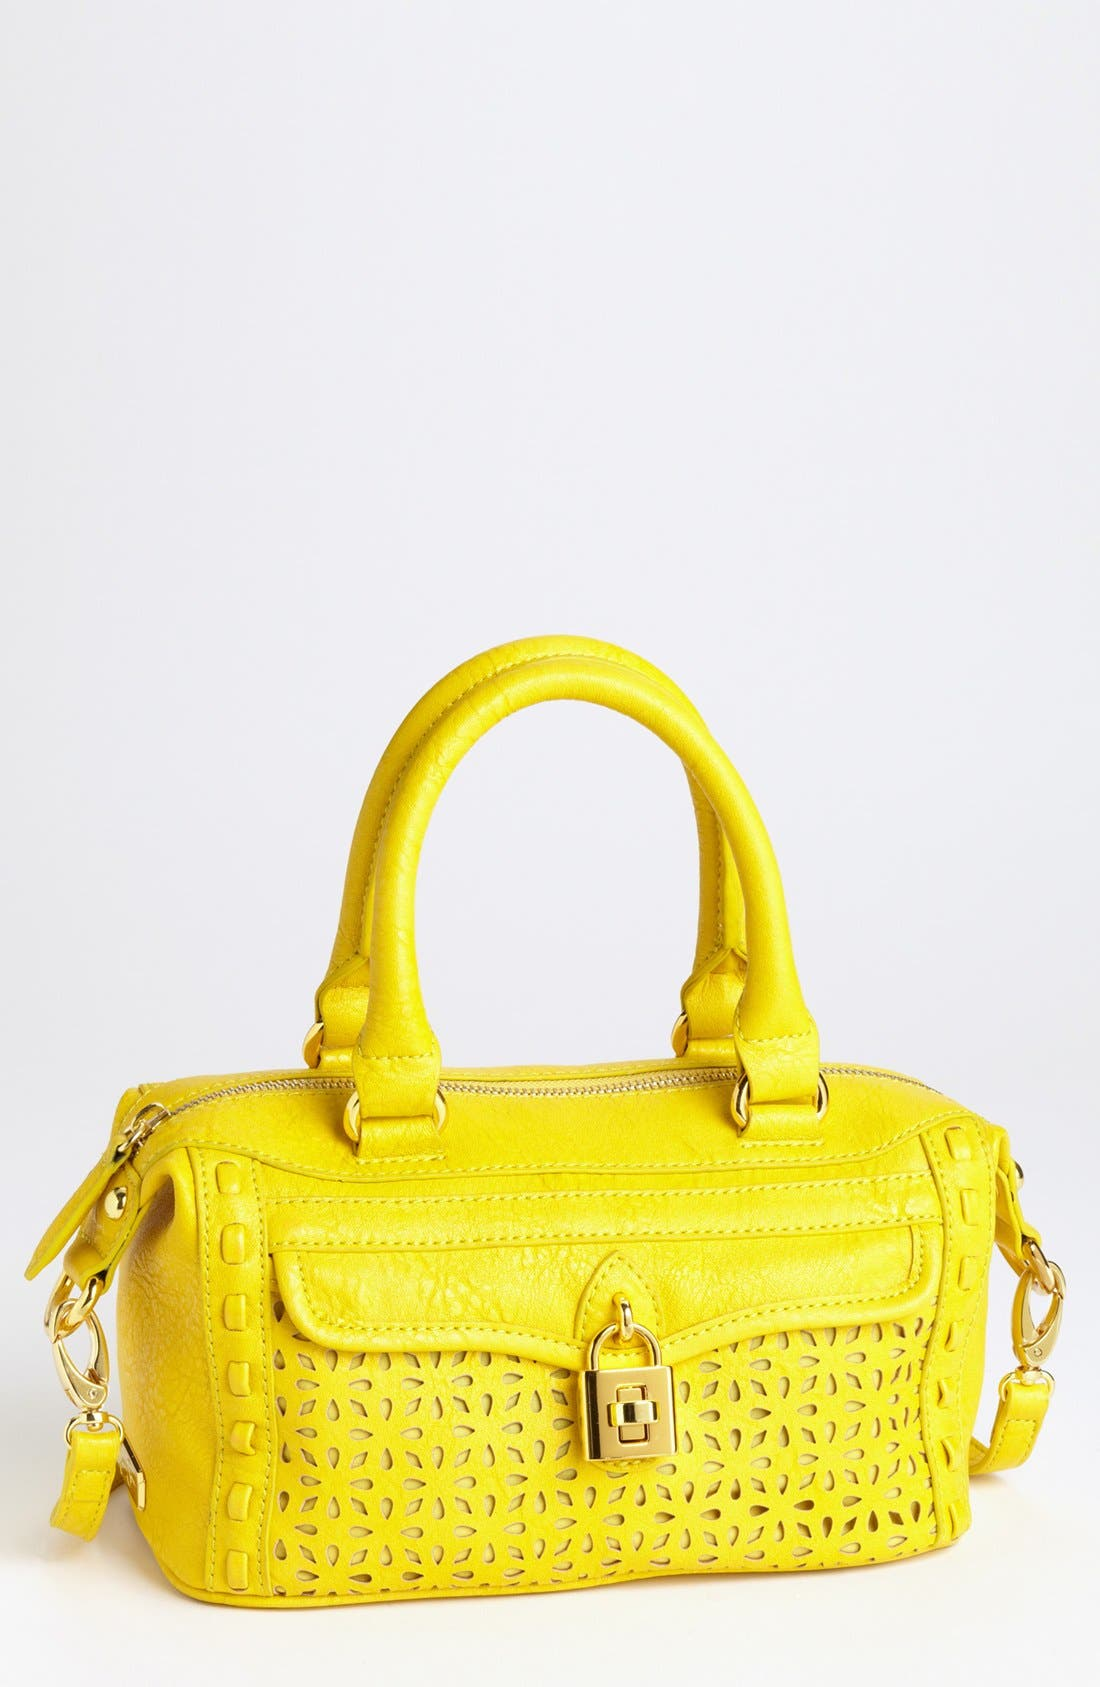 Alternate Image 1 Selected - Jessica Simpson 'Madison - Mini' Faux Leather Satchel